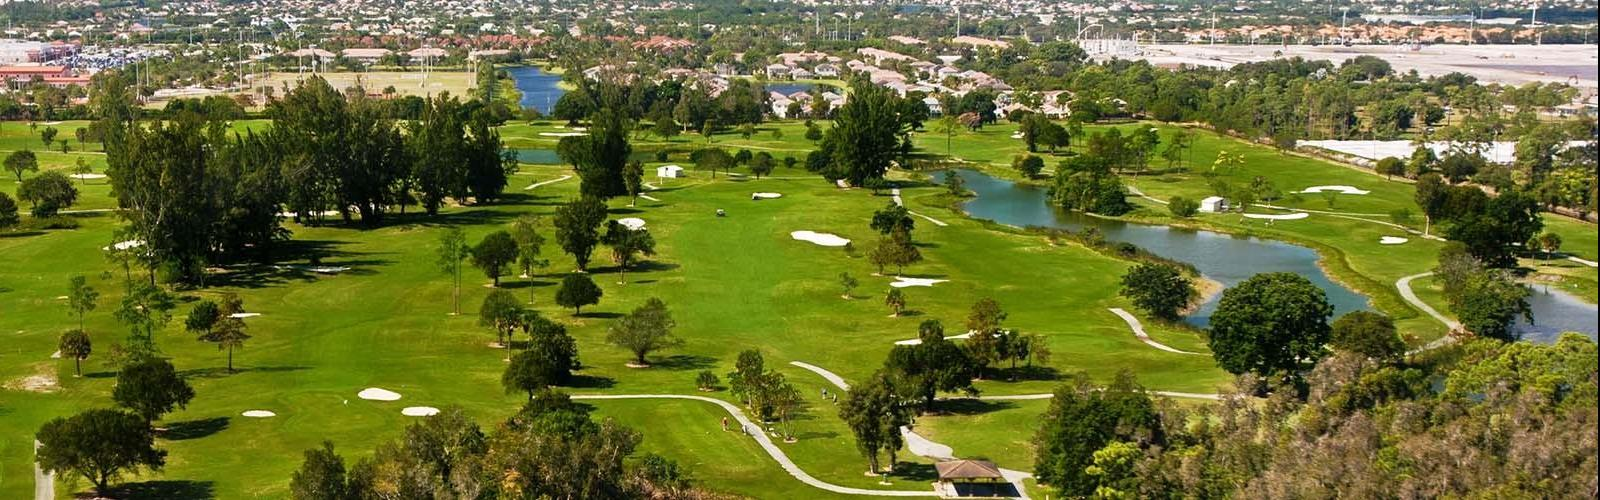 The Links at Boynton Beach aerial view